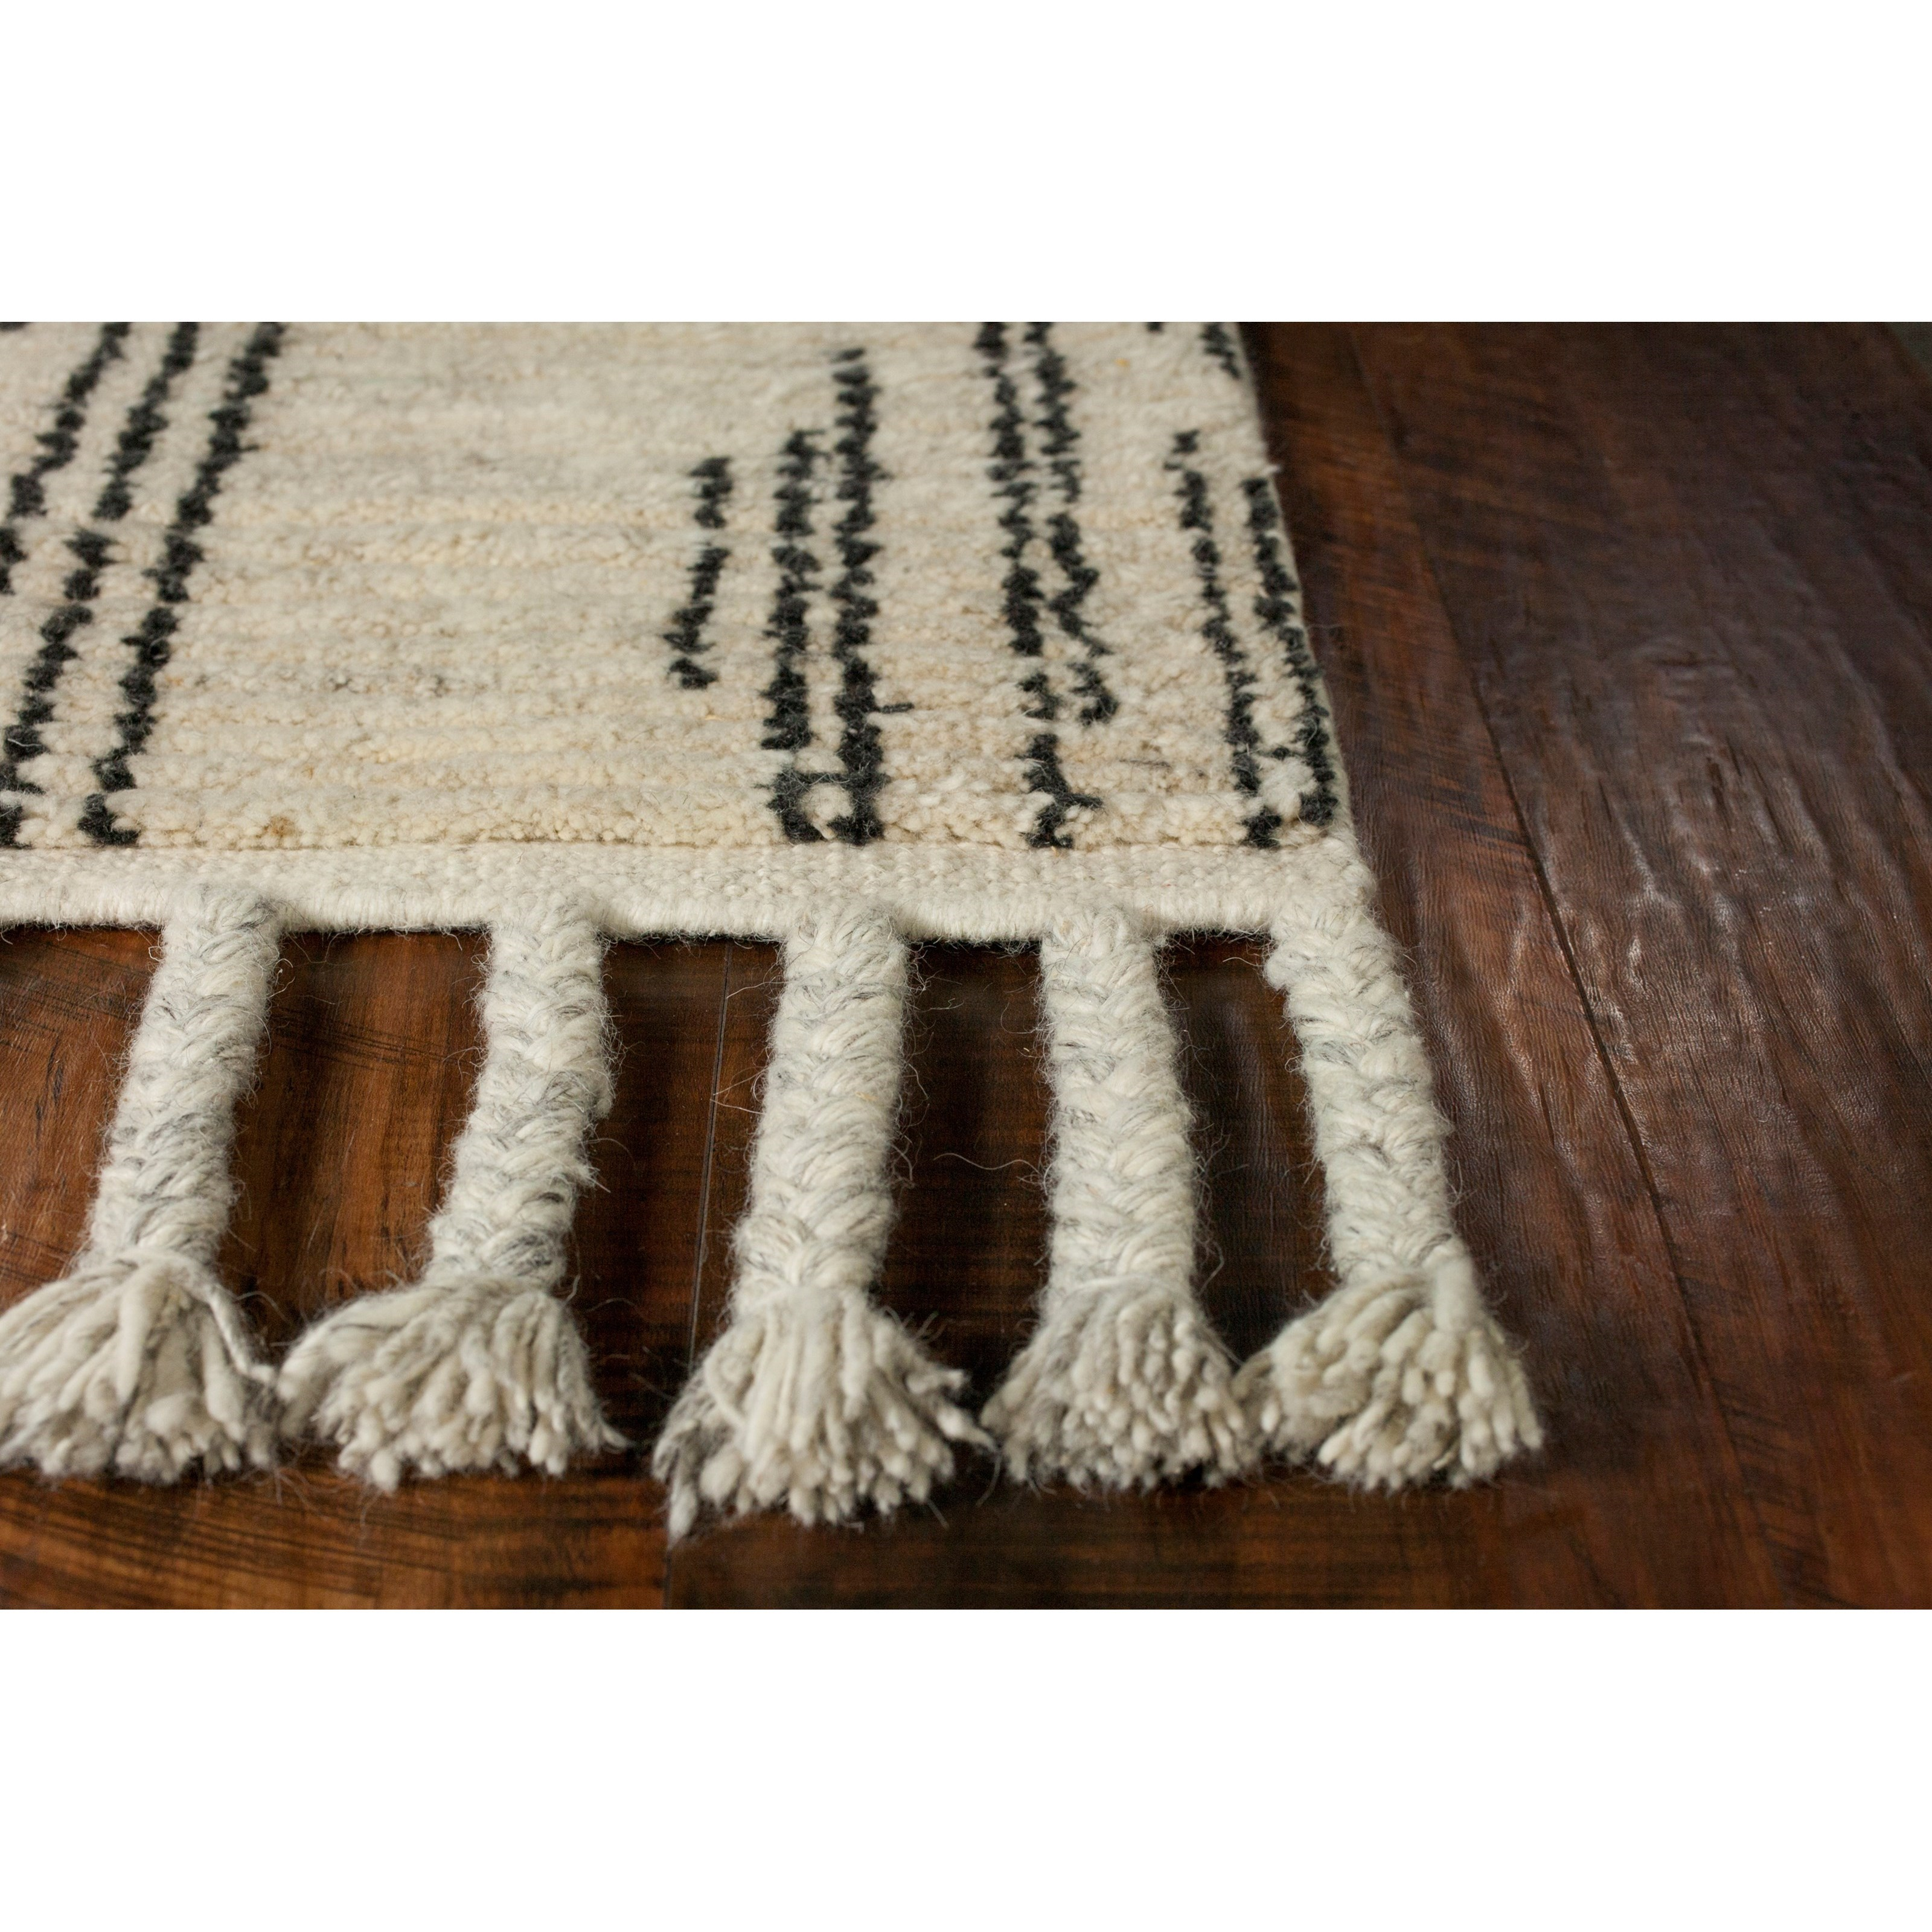 Austin 9' x 13' Natural Stitches Rug by Kas at Zak's Home